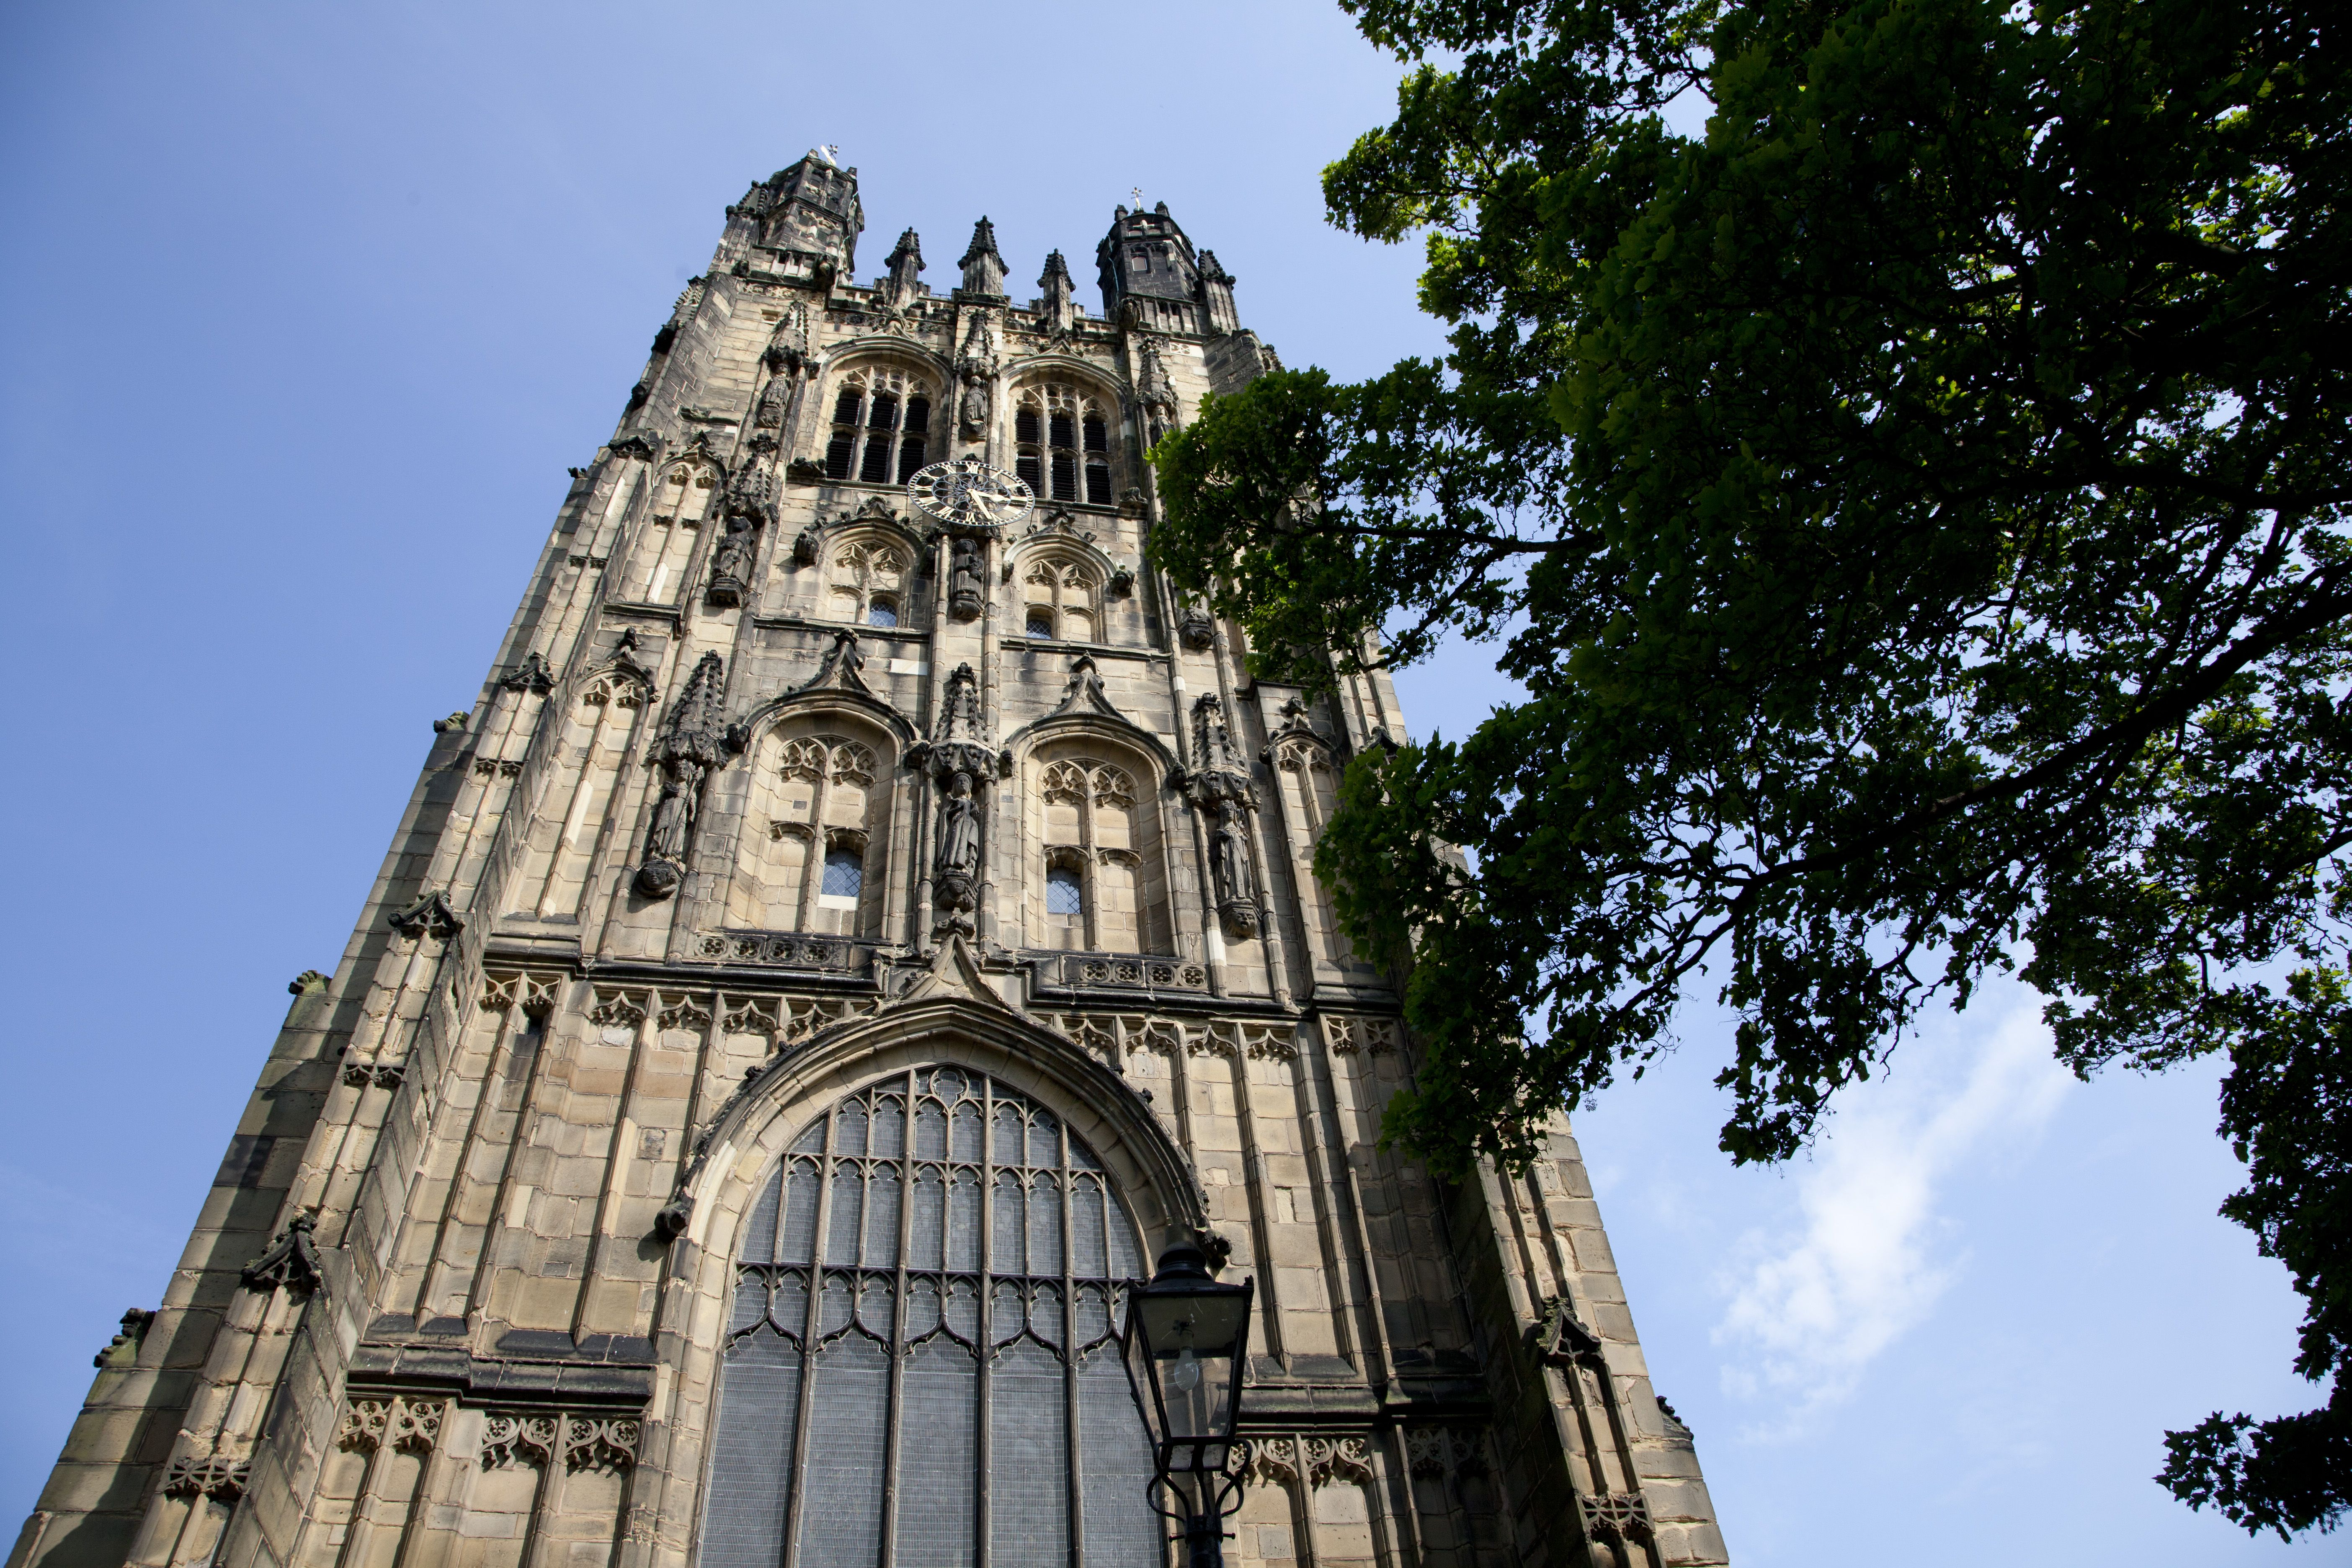 Did You Know The Steeple At St Giles Church Wrexham Is One Of